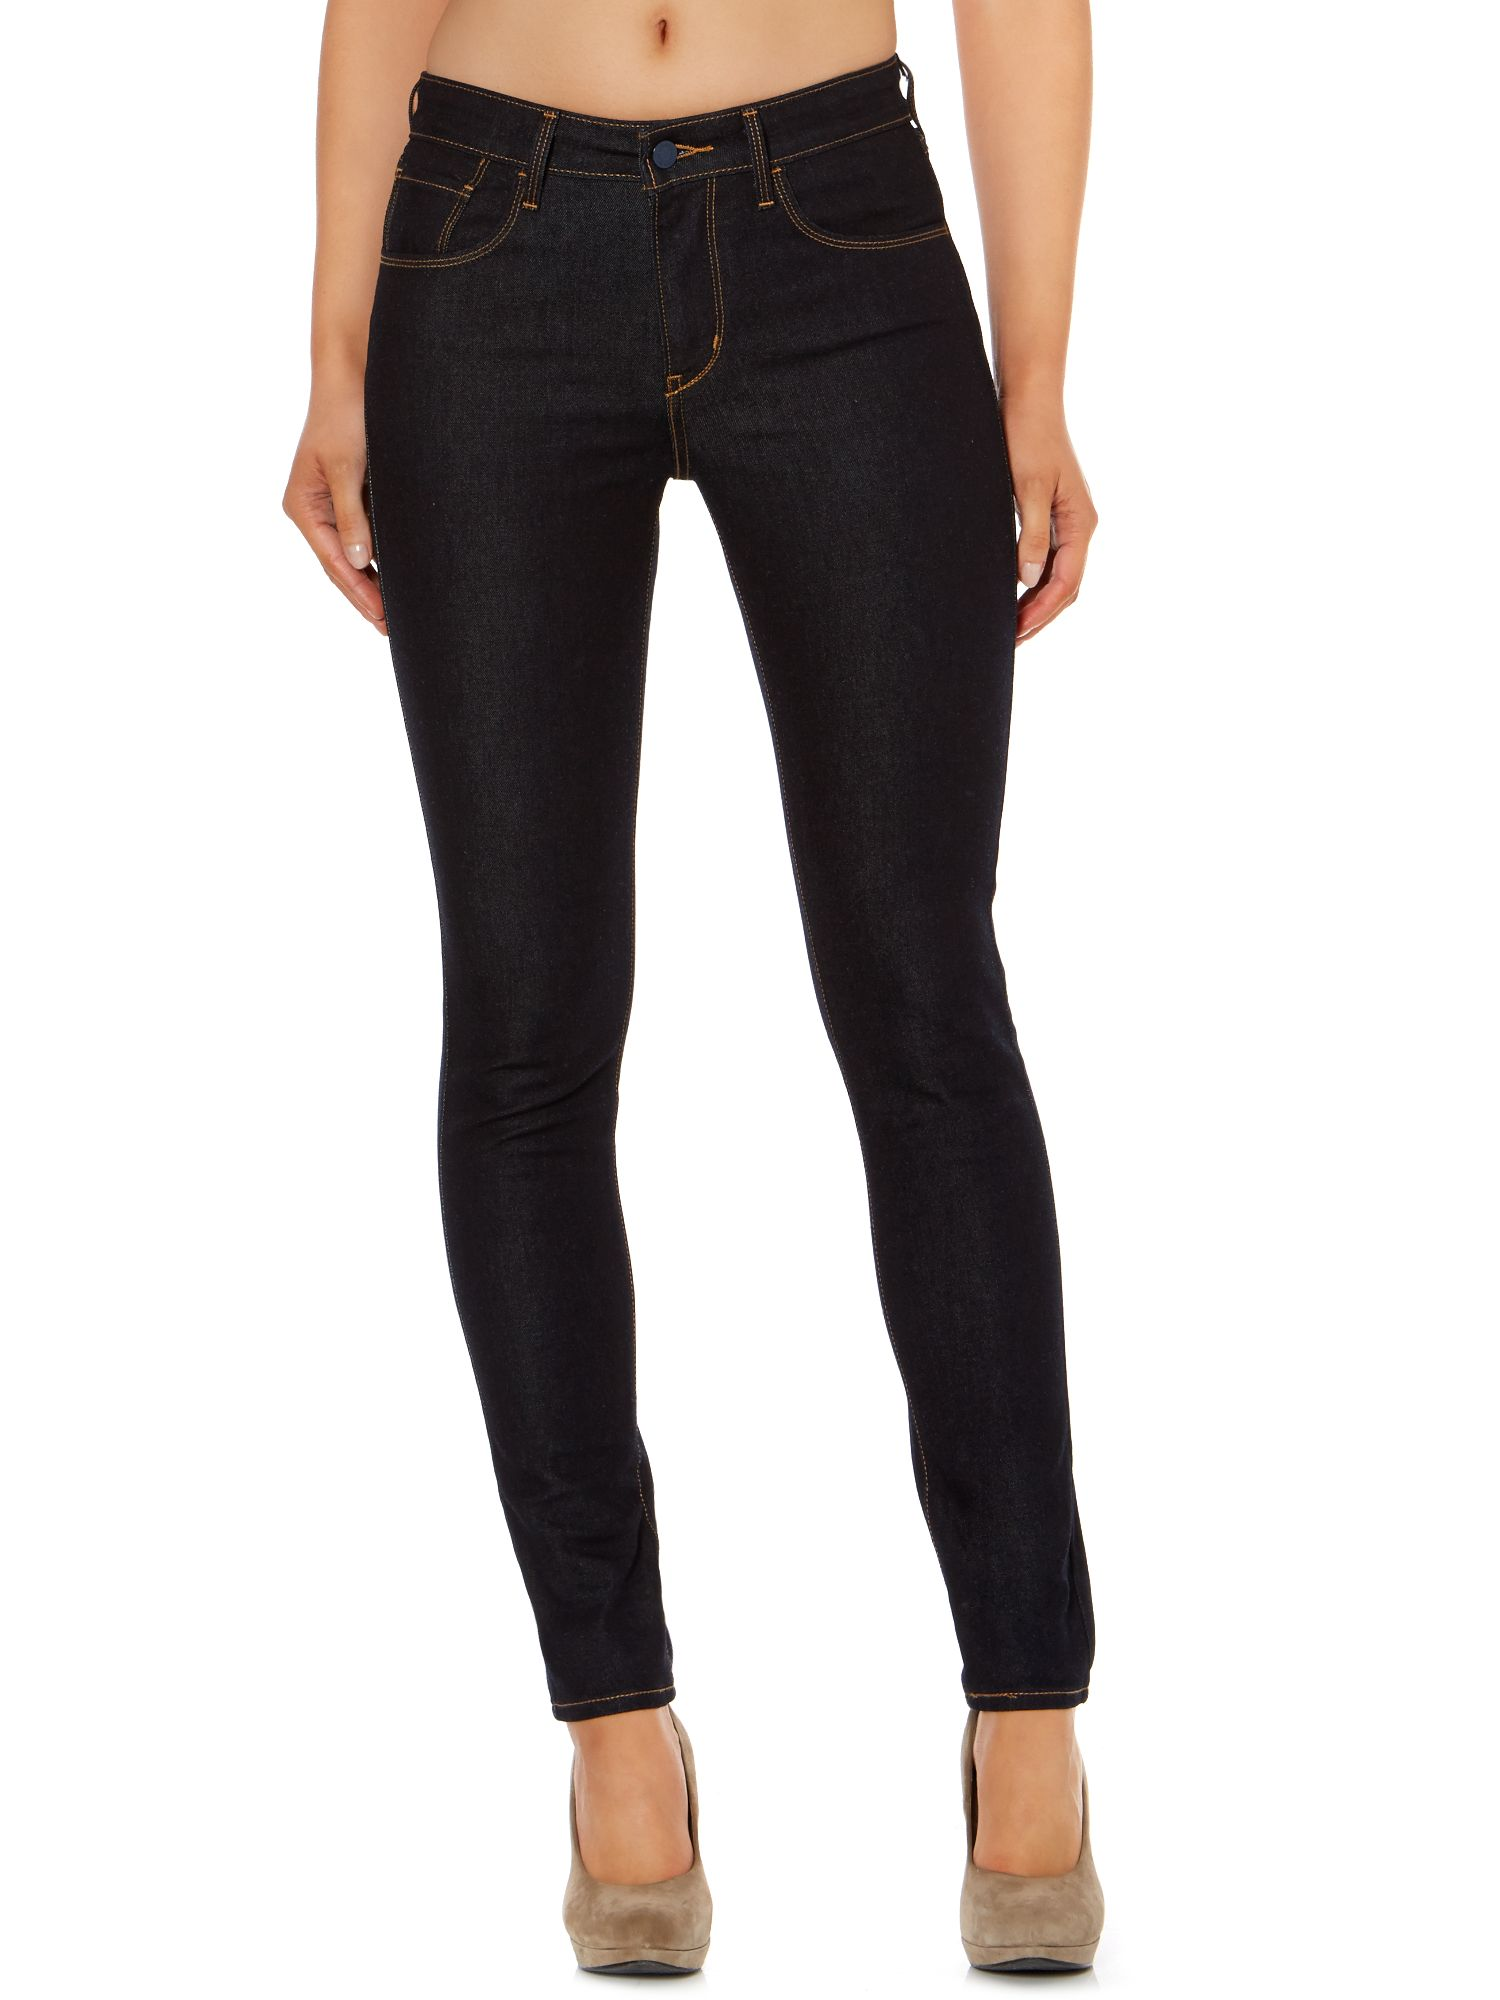 High rise skinny jeans in Extra Shade